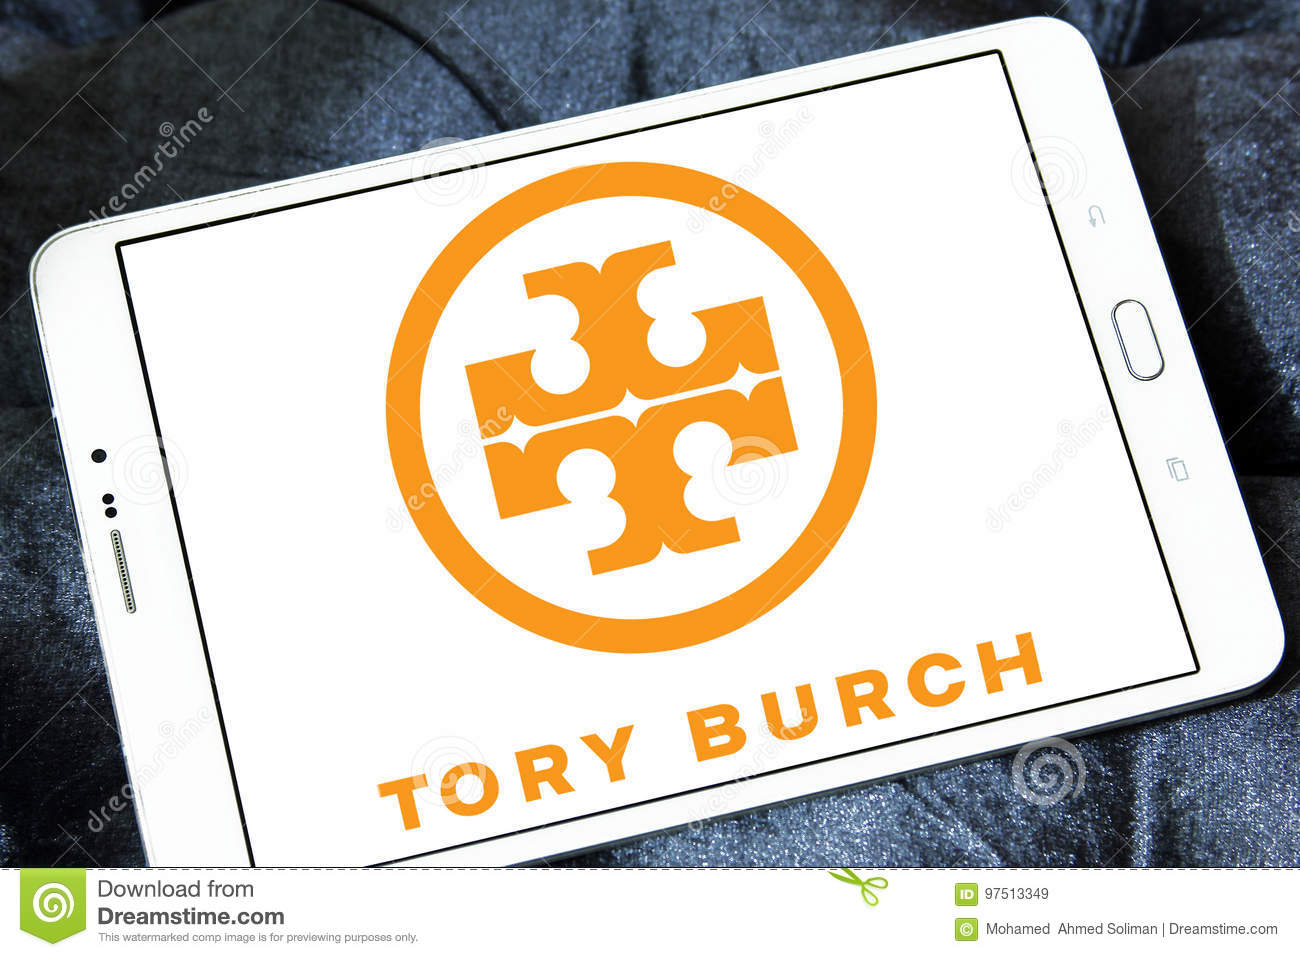 Tory burch logo editorial stock image image of cellphone 97513349 logo of fashion company tory burch on samsung tablet buycottarizona Images